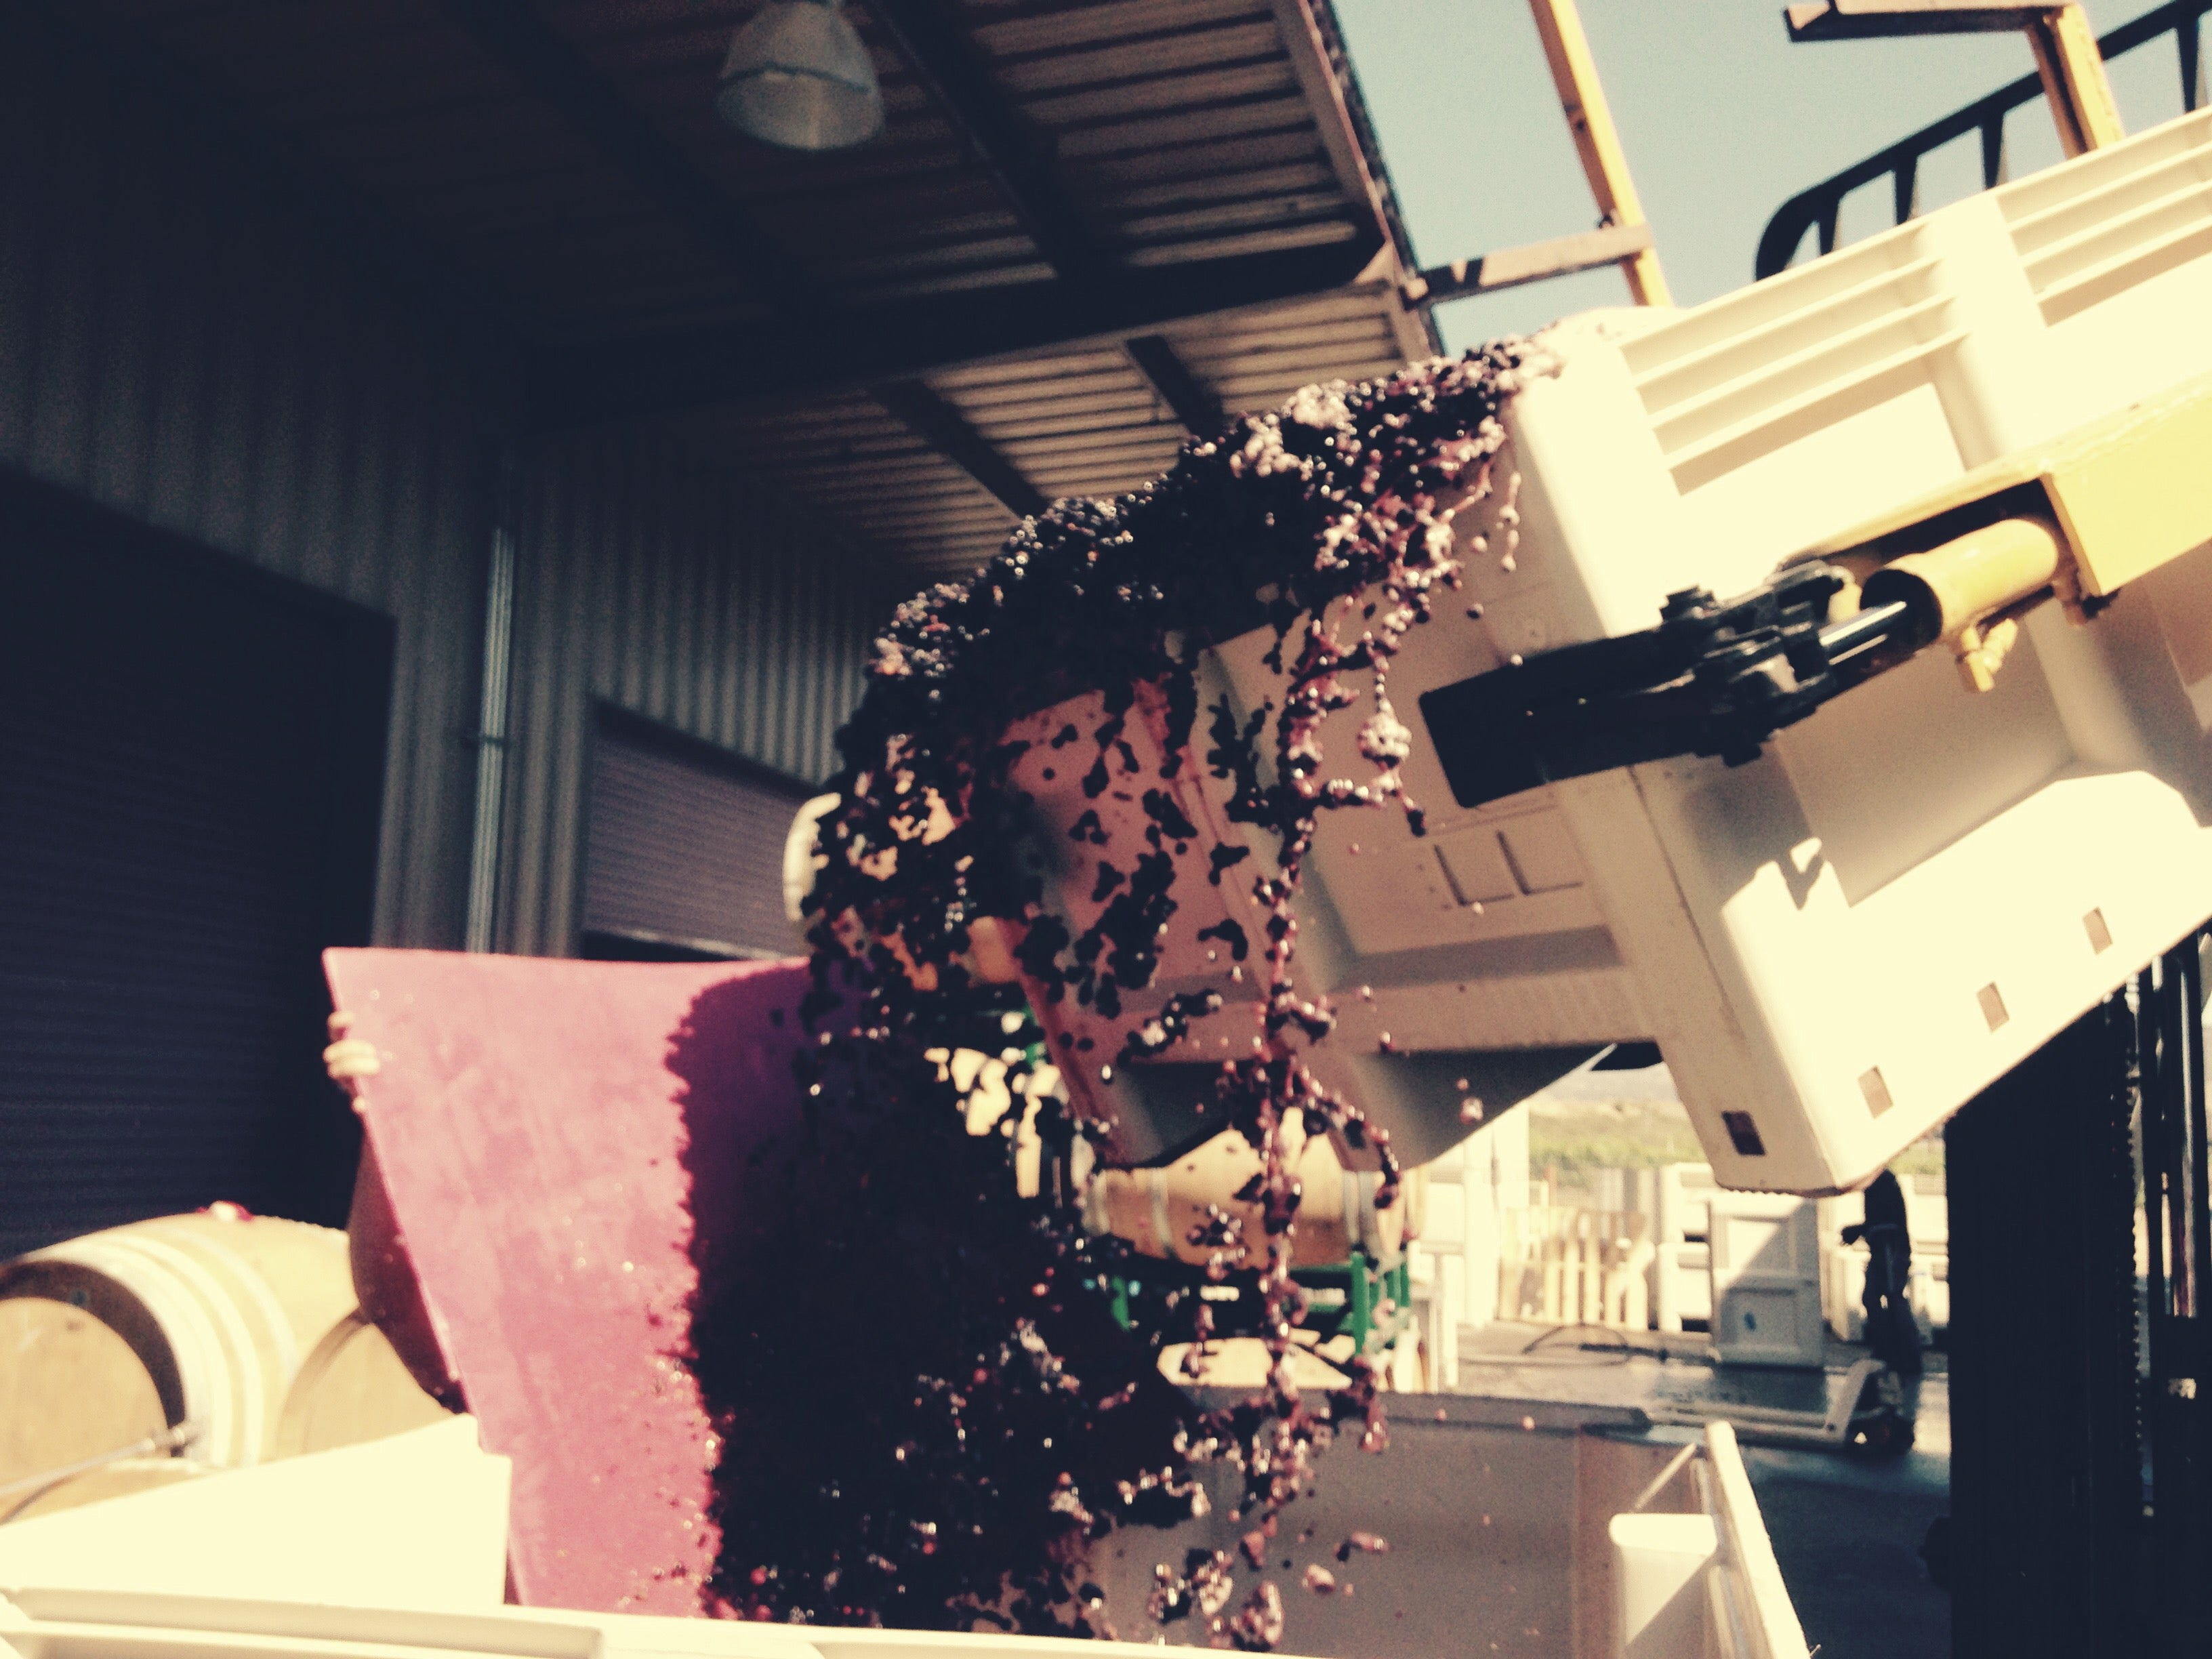 Sorting the 2015 Pinot Noir Harvest at C2 Cellars.